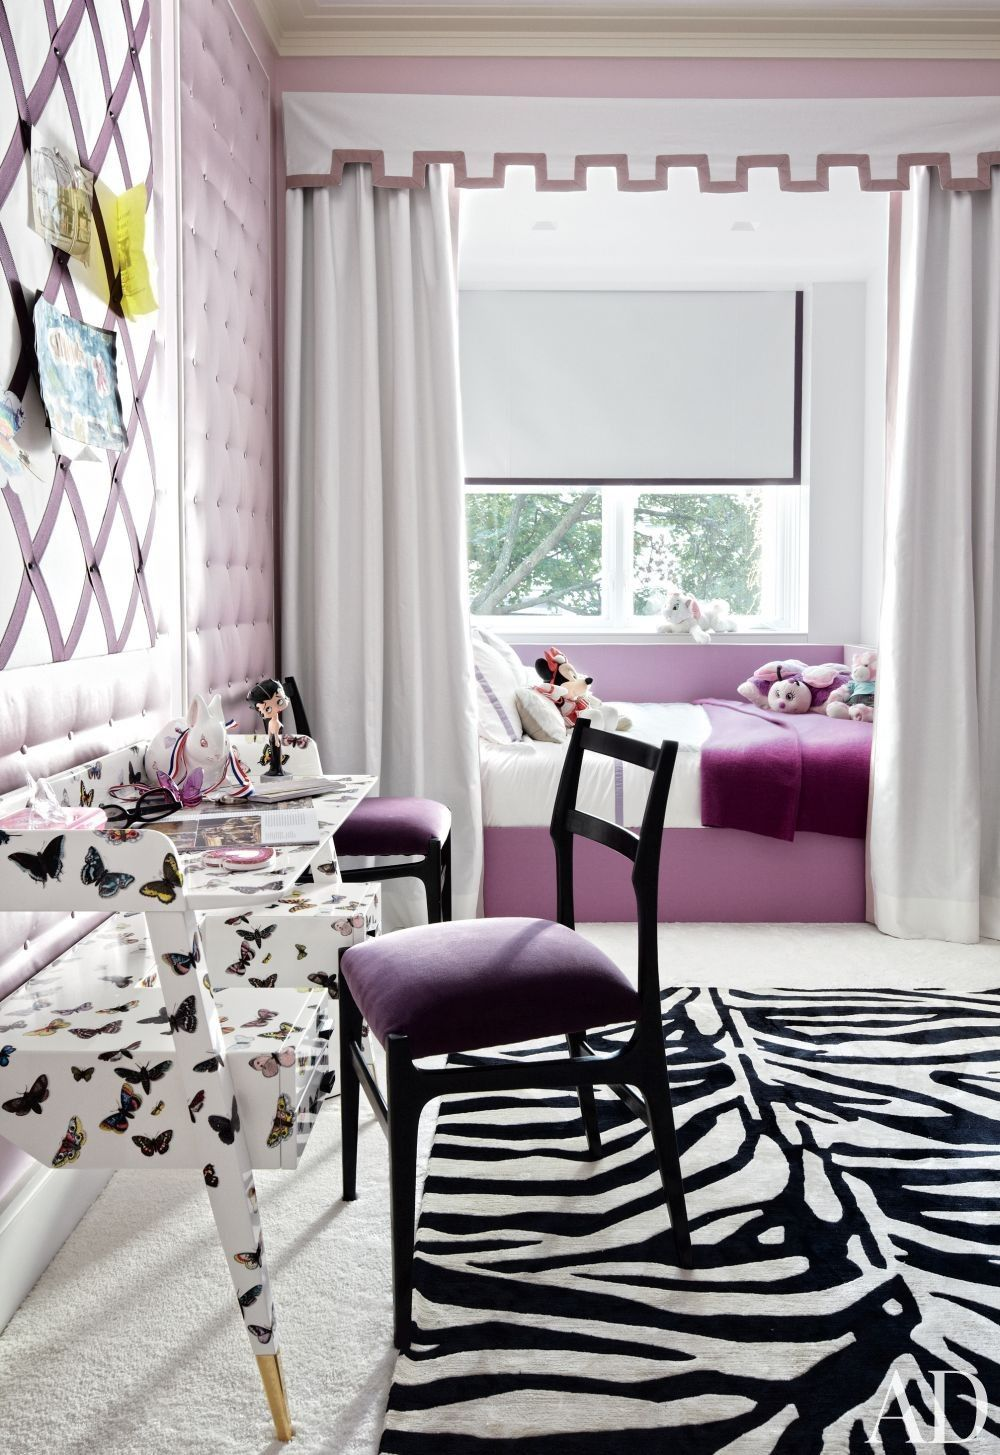 Contemporary Bedroom by Pamplemousse Design and Oliver Cope Architect in New York, New York